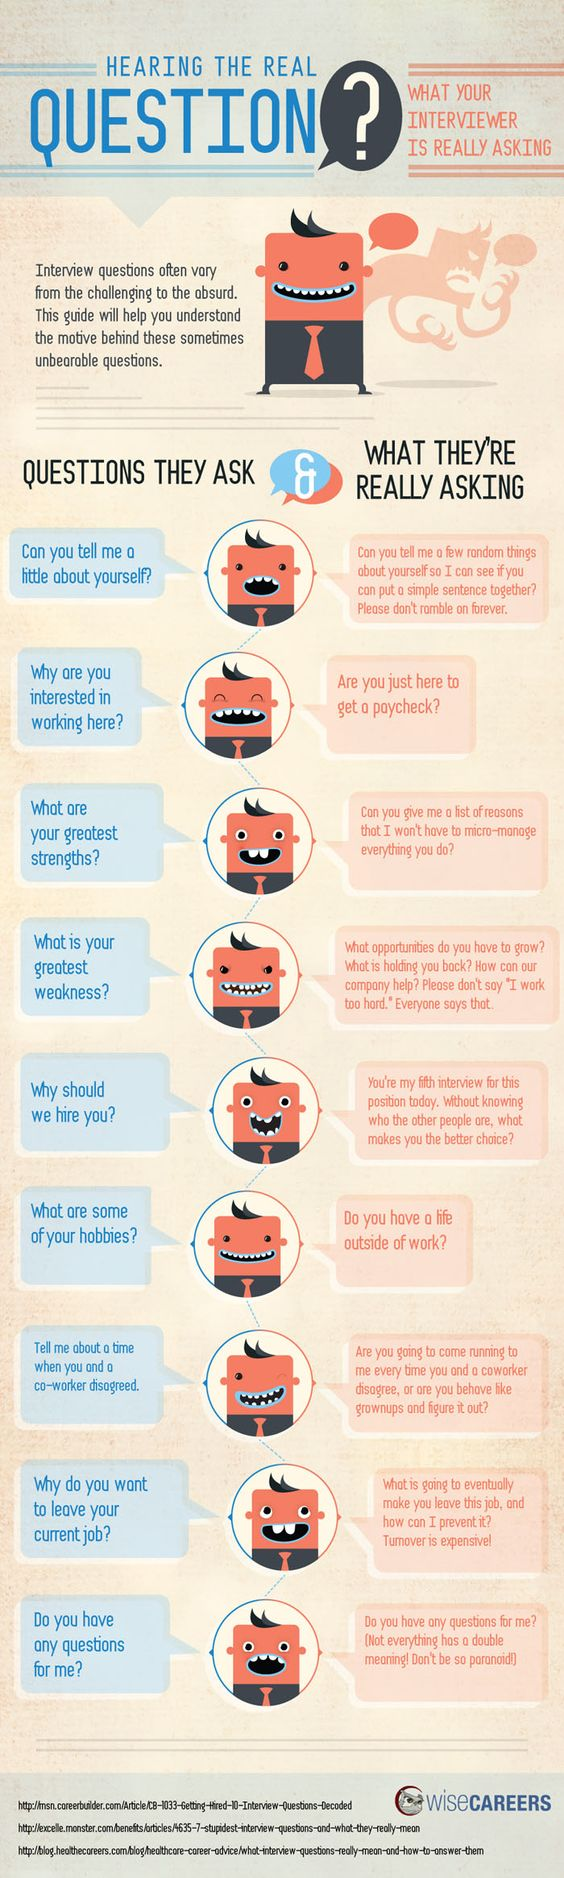 What your interviewer is really asking (Infographic)